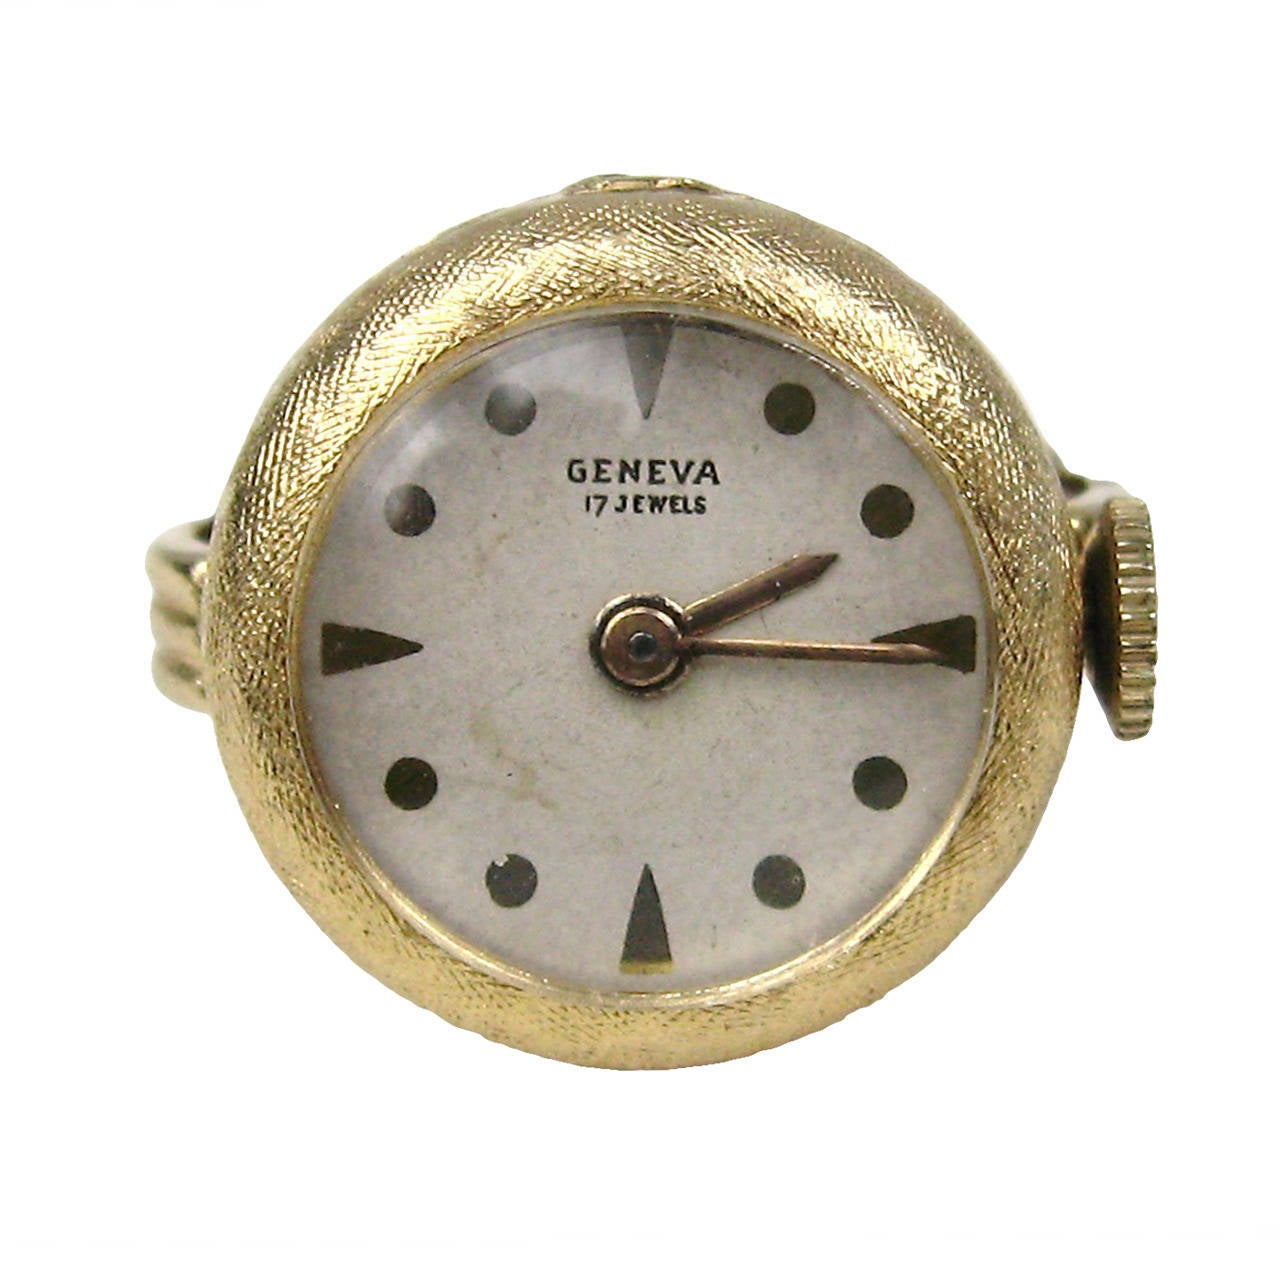 1960s 14k Gold Geneva 17 Jewel Watch Ring For Sale At 1stdibs